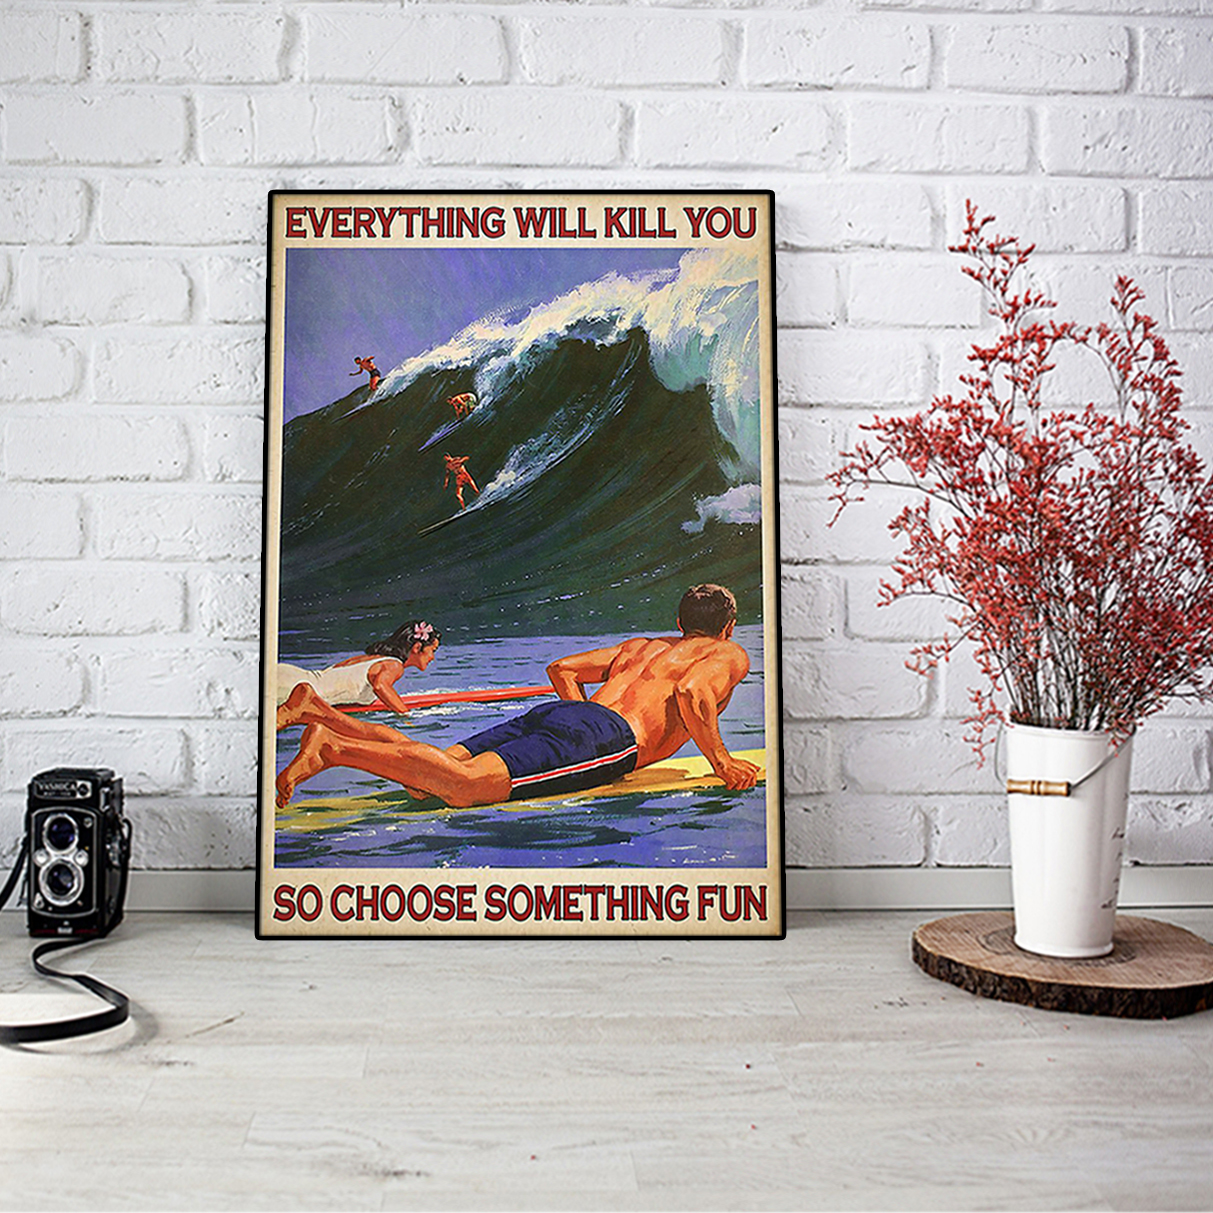 Everything will kill you so choose something fun surfing poster A2